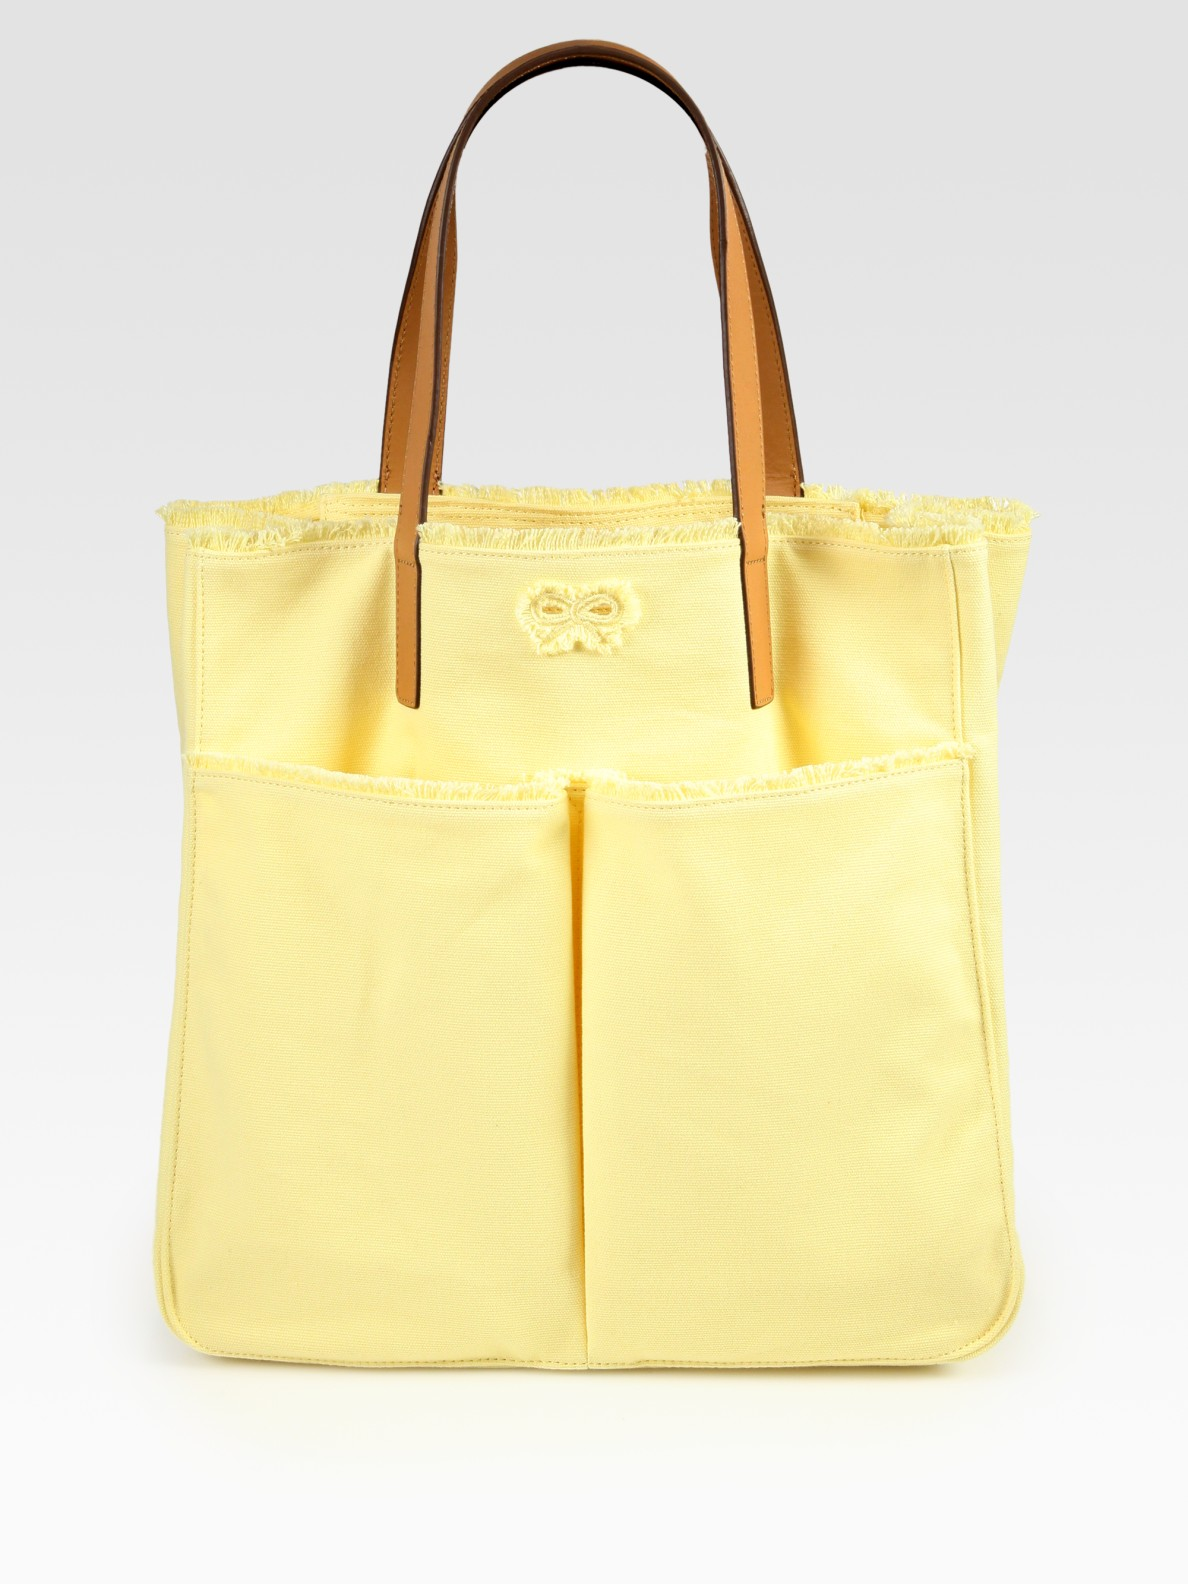 Anya hindmarch Nevis Canvas Tote Bag in Yellow | Lyst